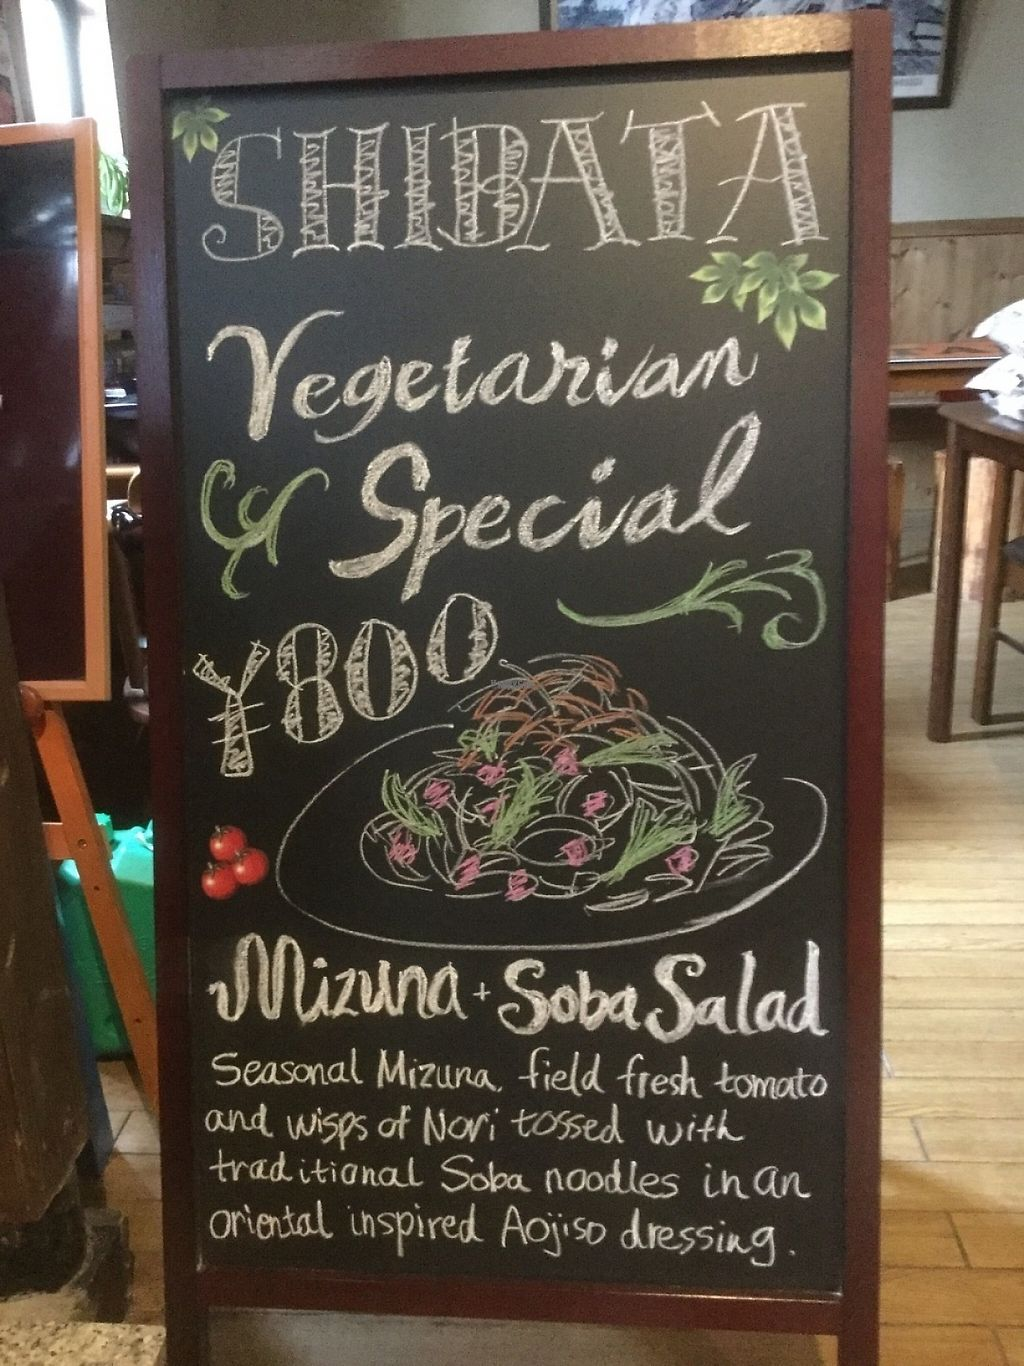 """Photo of Shibata Restaurant  by <a href=""""/members/profile/BadAssBeastFree"""">BadAssBeastFree</a> <br/>Soba salad <br/> December 6, 2016  - <a href='/contact/abuse/image/83648/197909'>Report</a>"""